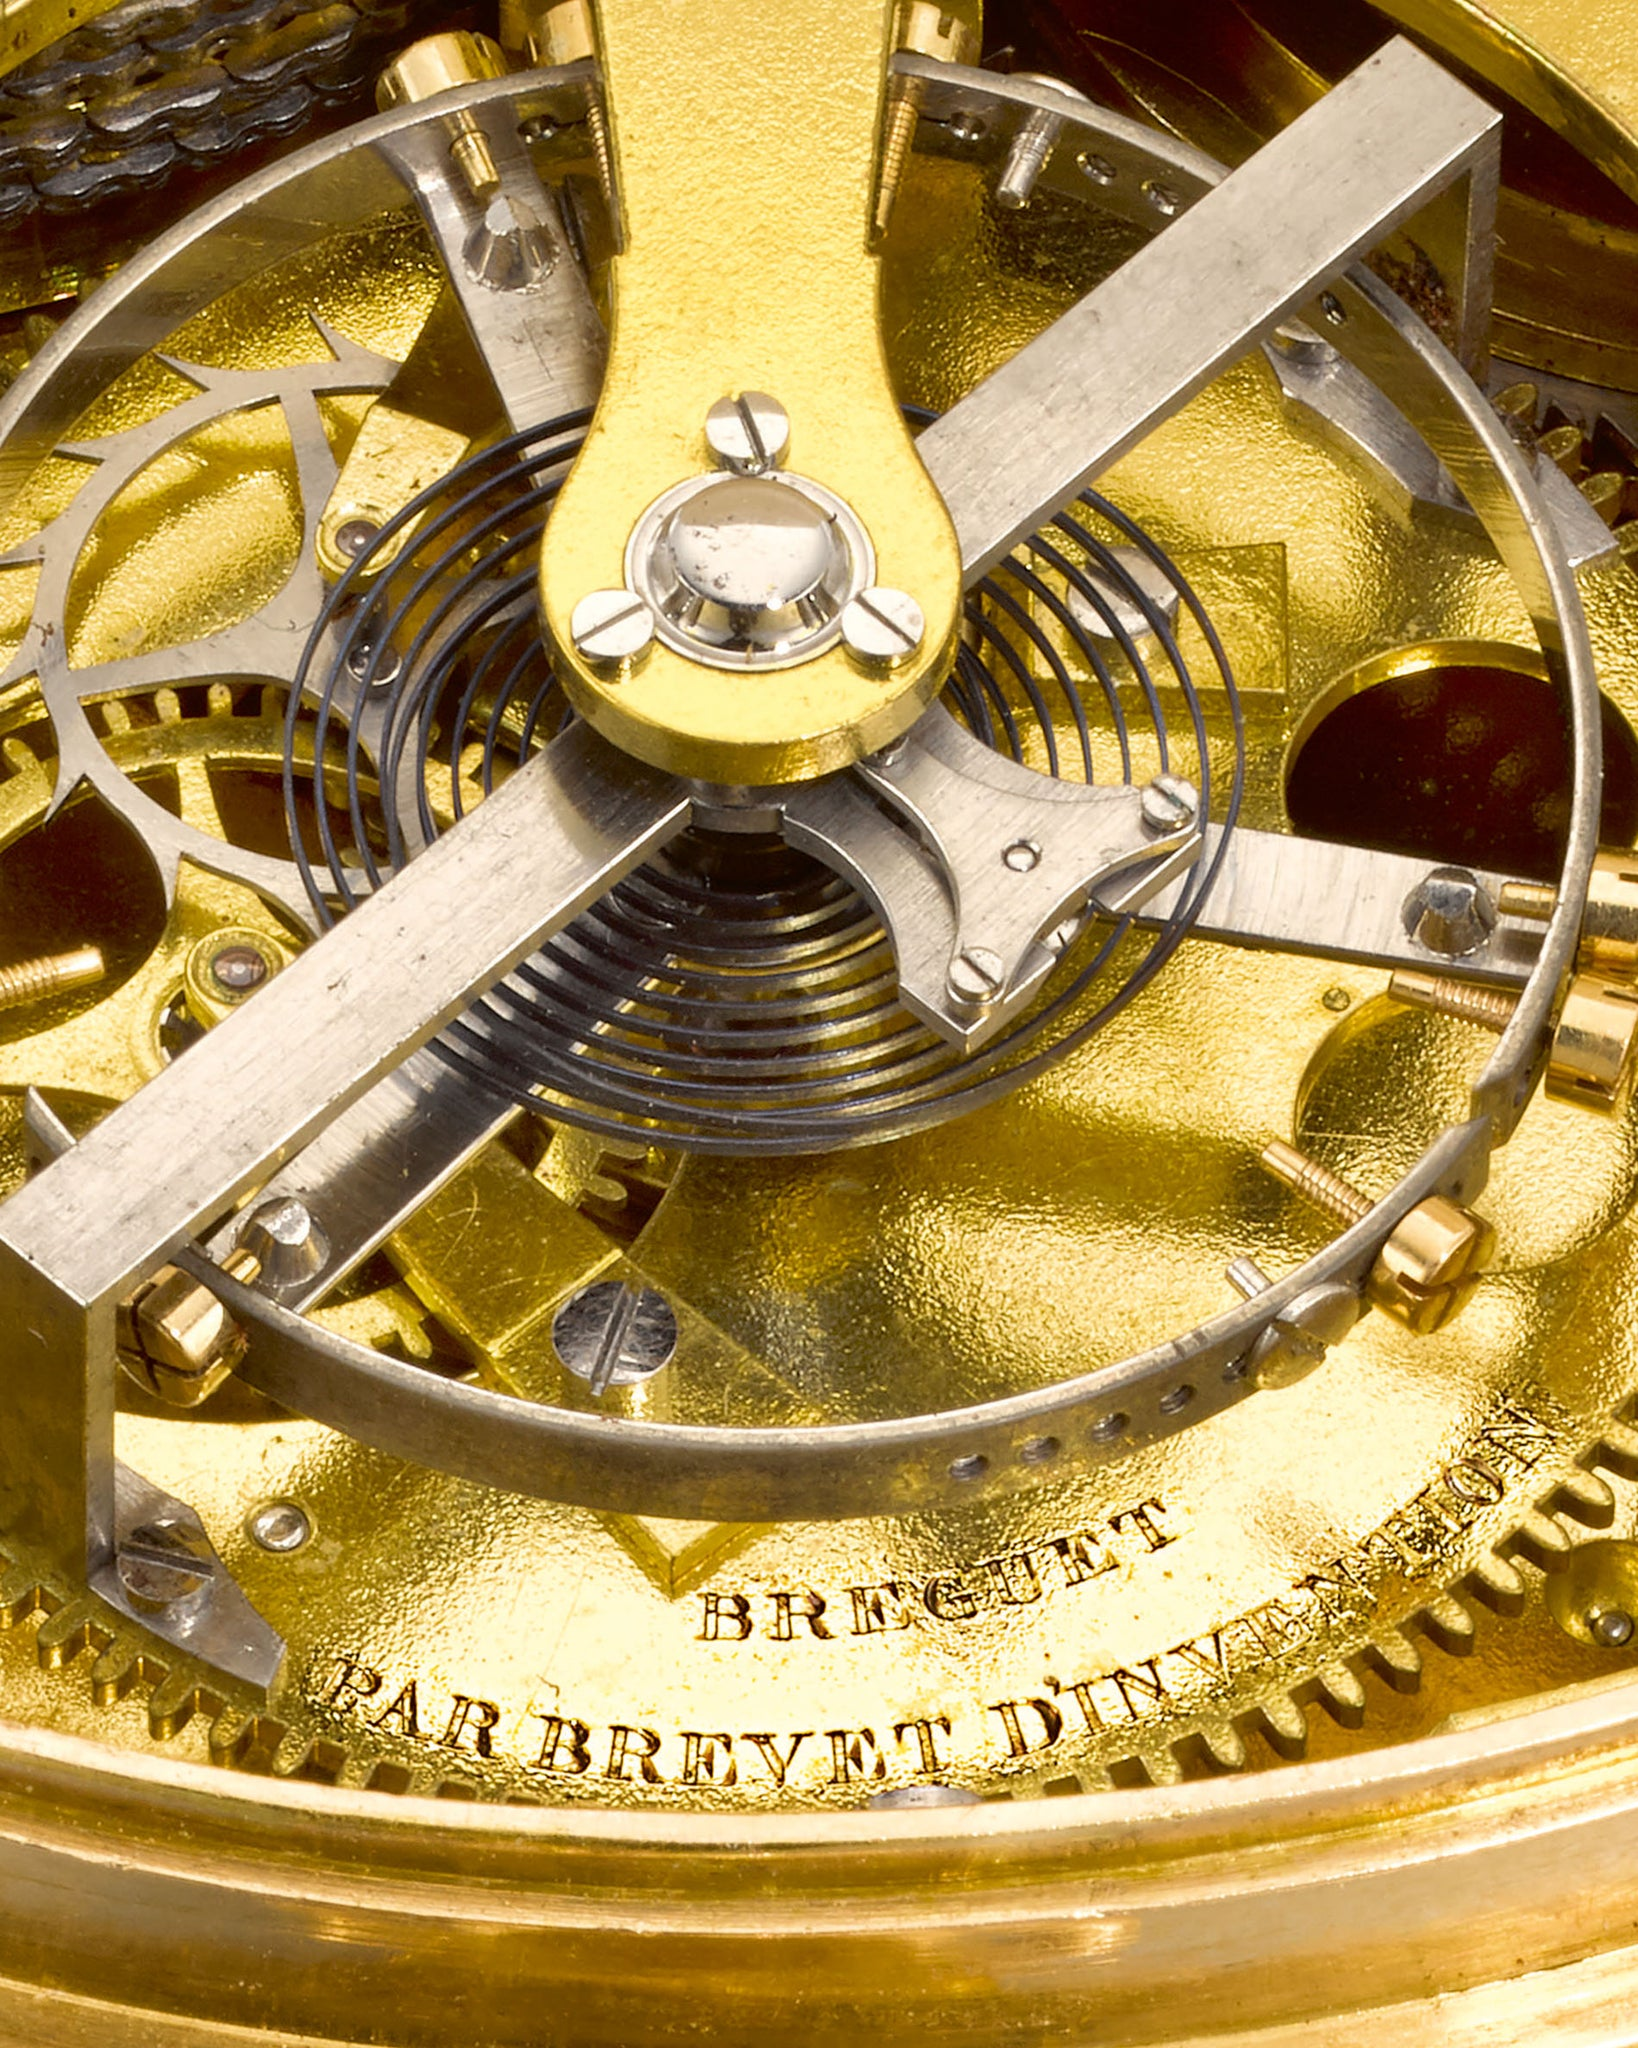 Macro shot of the tourbillon cage and platform of the King Geogre III's watch made by Breguet